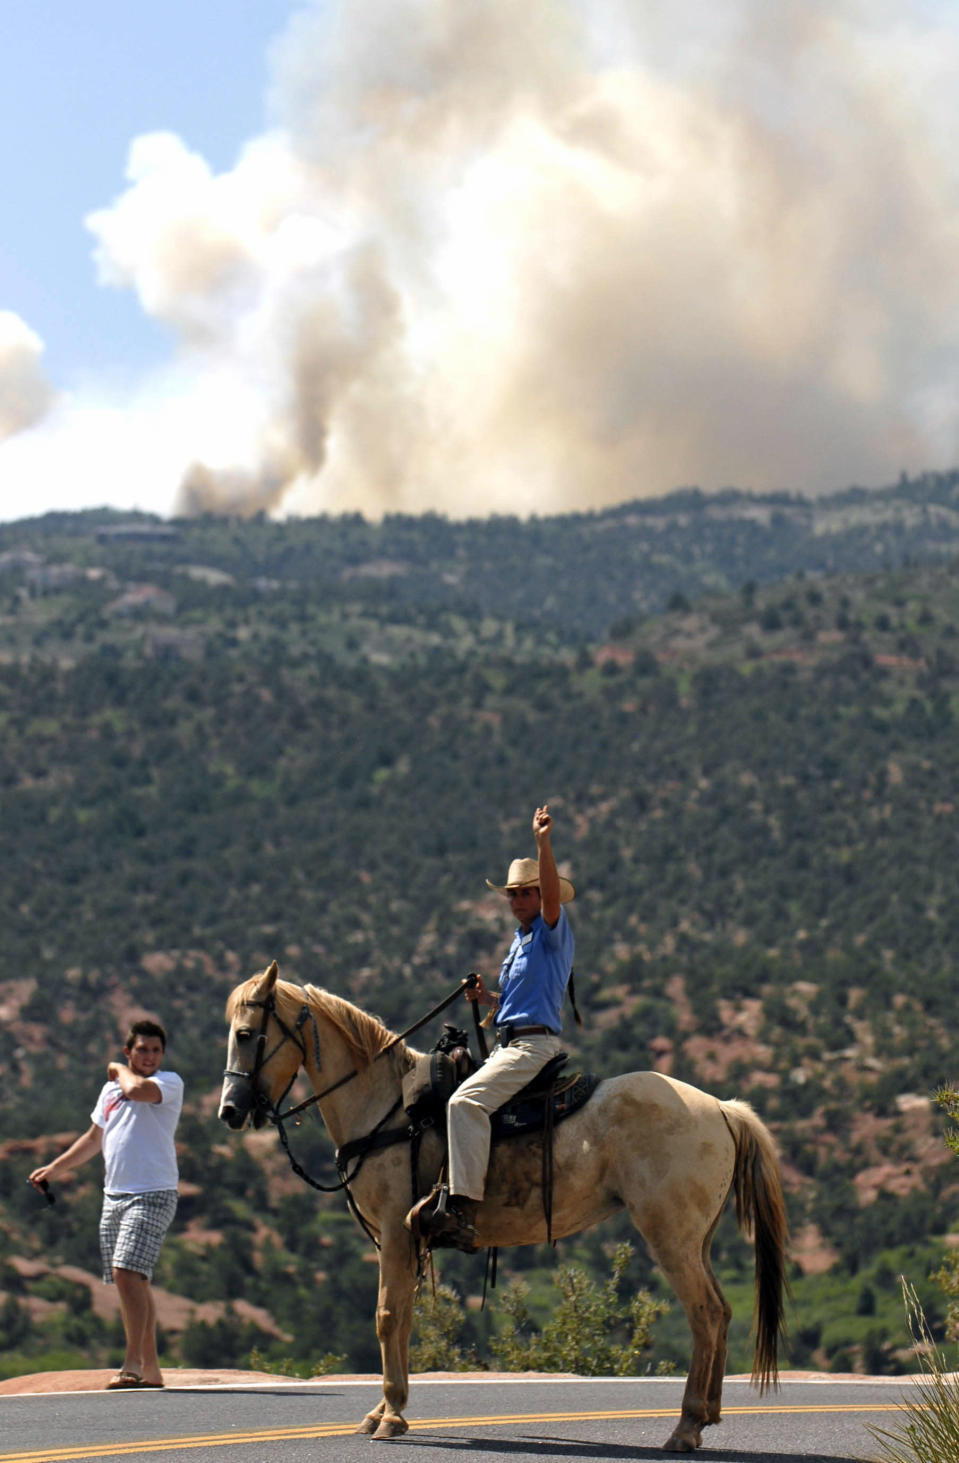 Stephanie Stover, with the City of Colorado Springs, directs traffic away after a mandatory evacuation was announced for the Garden of The Gods due to a wildfire burning west of Colorado Springs, Colo. on Saturday, June 23, 2012. The fire has grown to an estimated 600 acres and The Gazette reports authorities are evacuating the exclusive Cedar Heights neighborhood as well as the Garden of the Gods. (AP Photo/Bryan Oller)